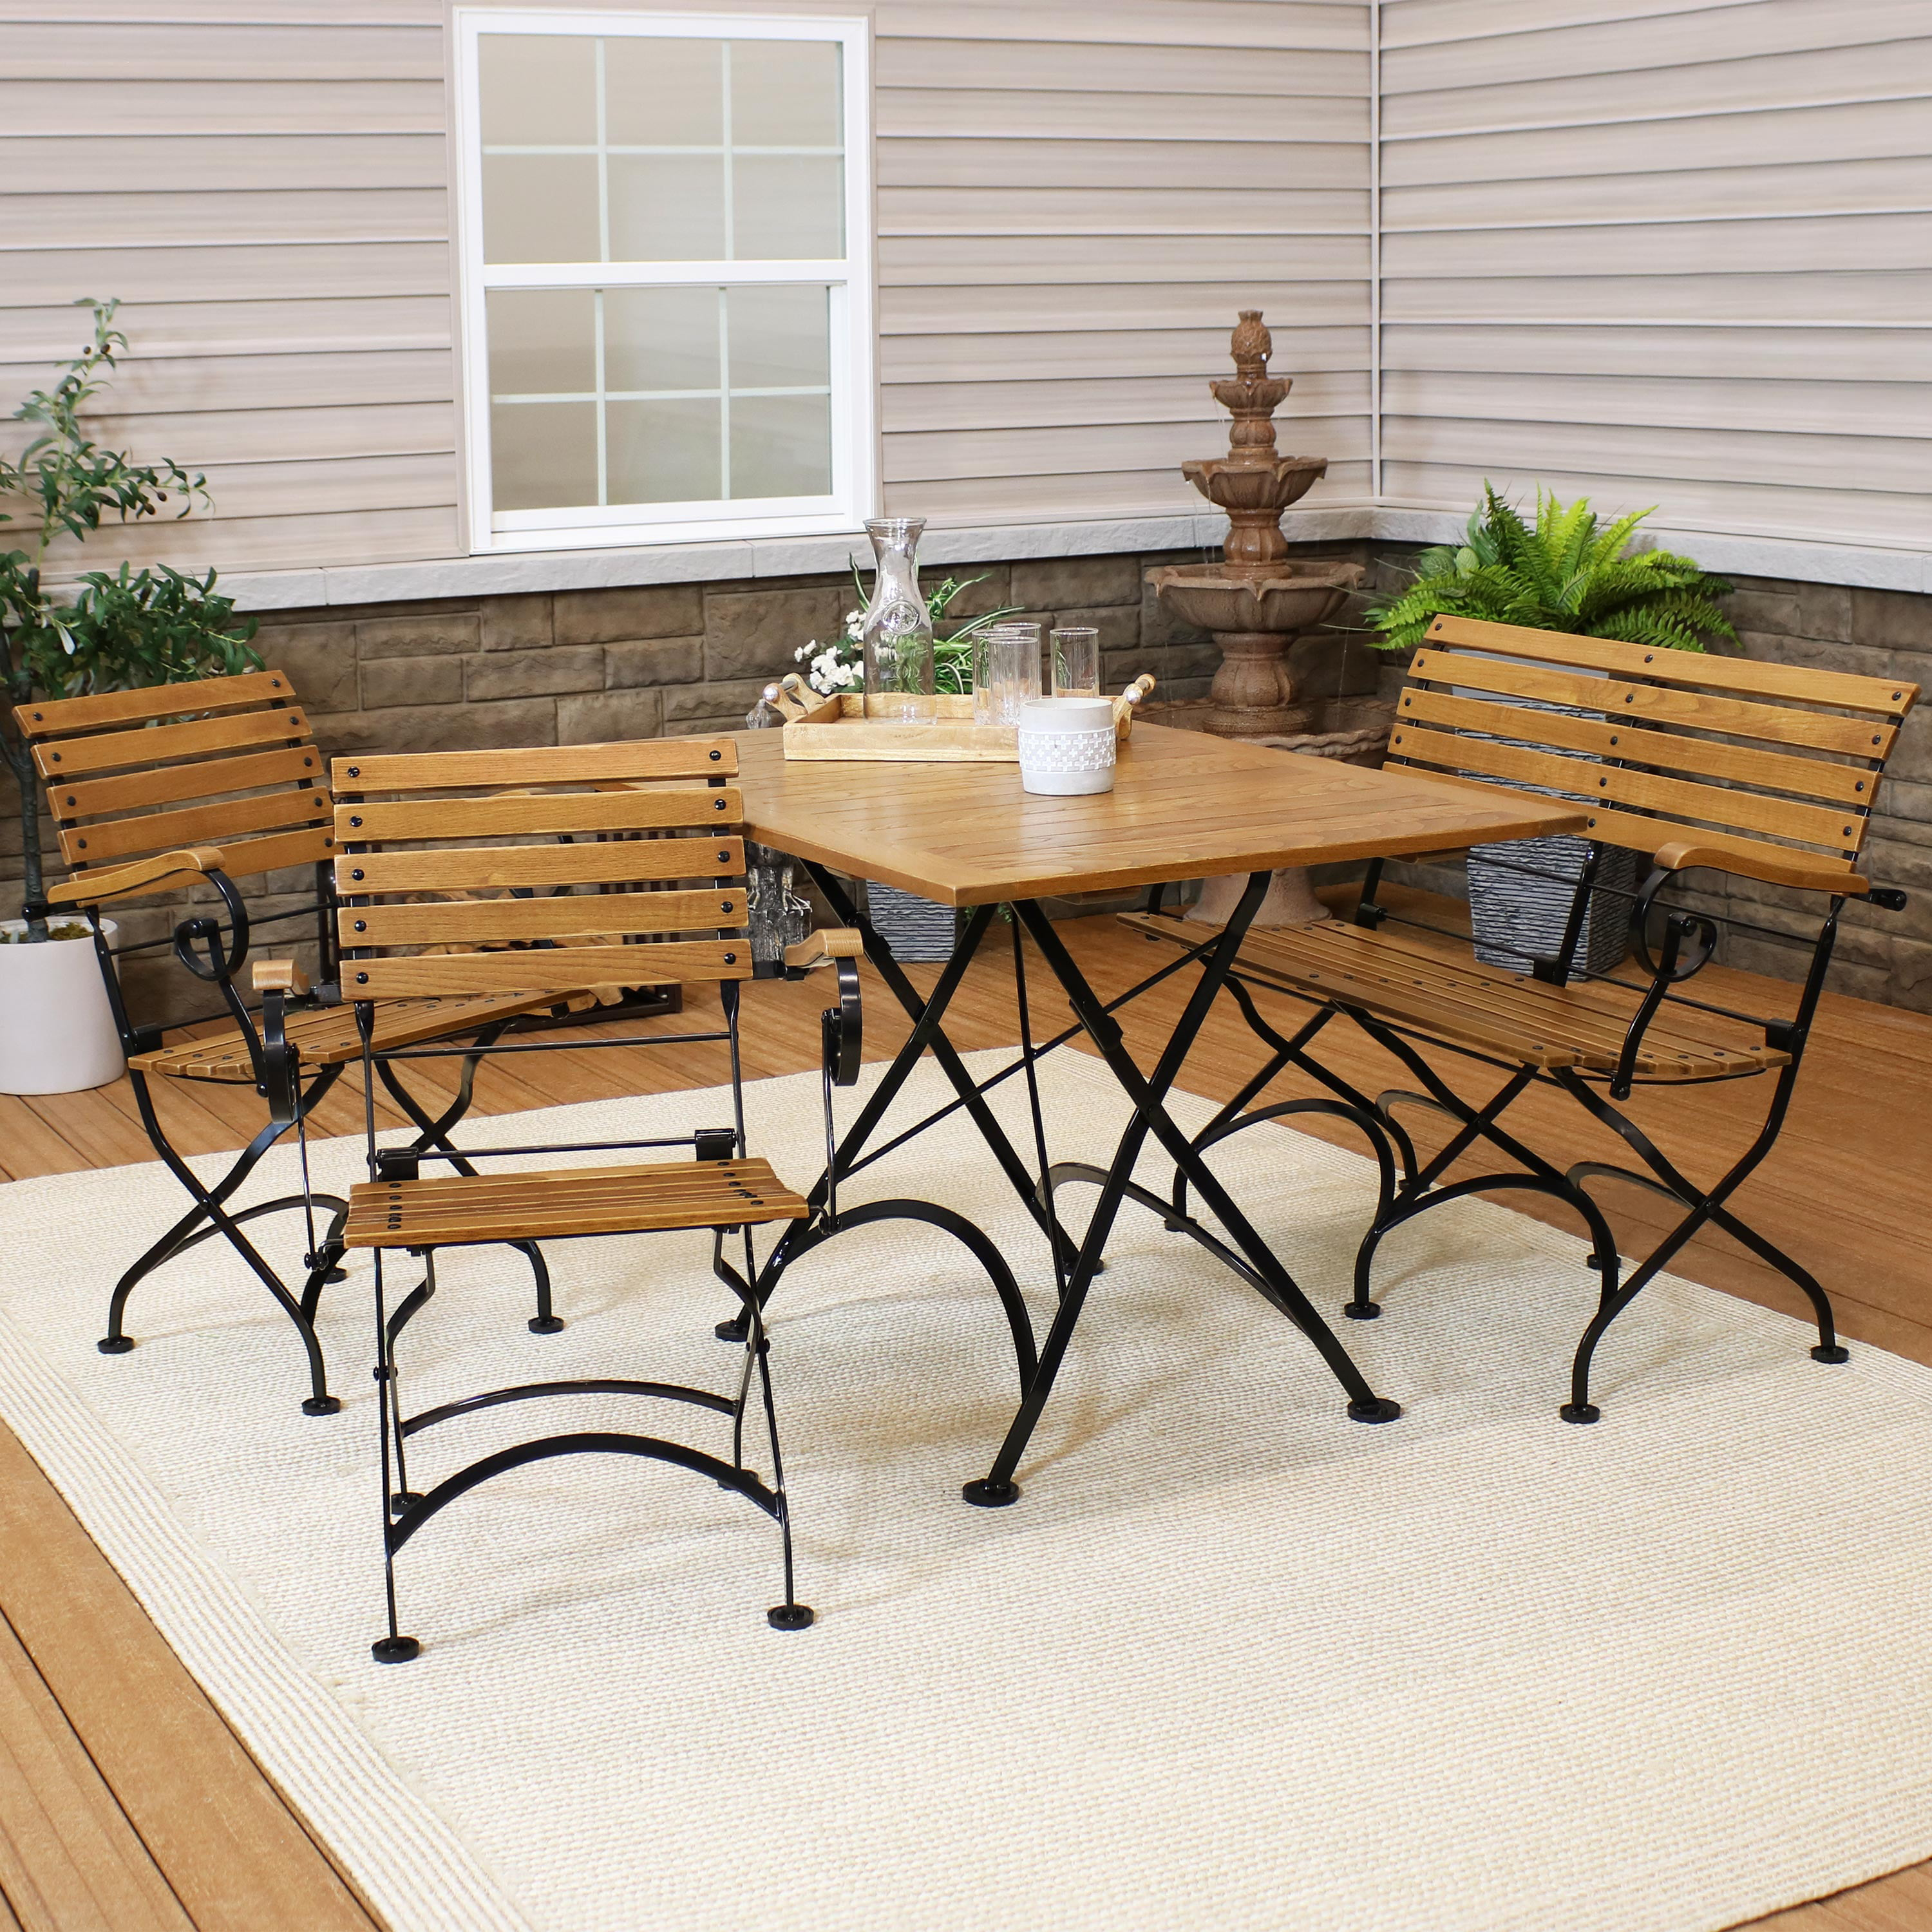 Picture of: 31 Inch Square Sunnydaze European Chestnut Wood Folding Square Bistro Table Portable Indoor Outdoor Foldable Table Perfect For Patio Kitchen Or Camp Site Bistro Tables